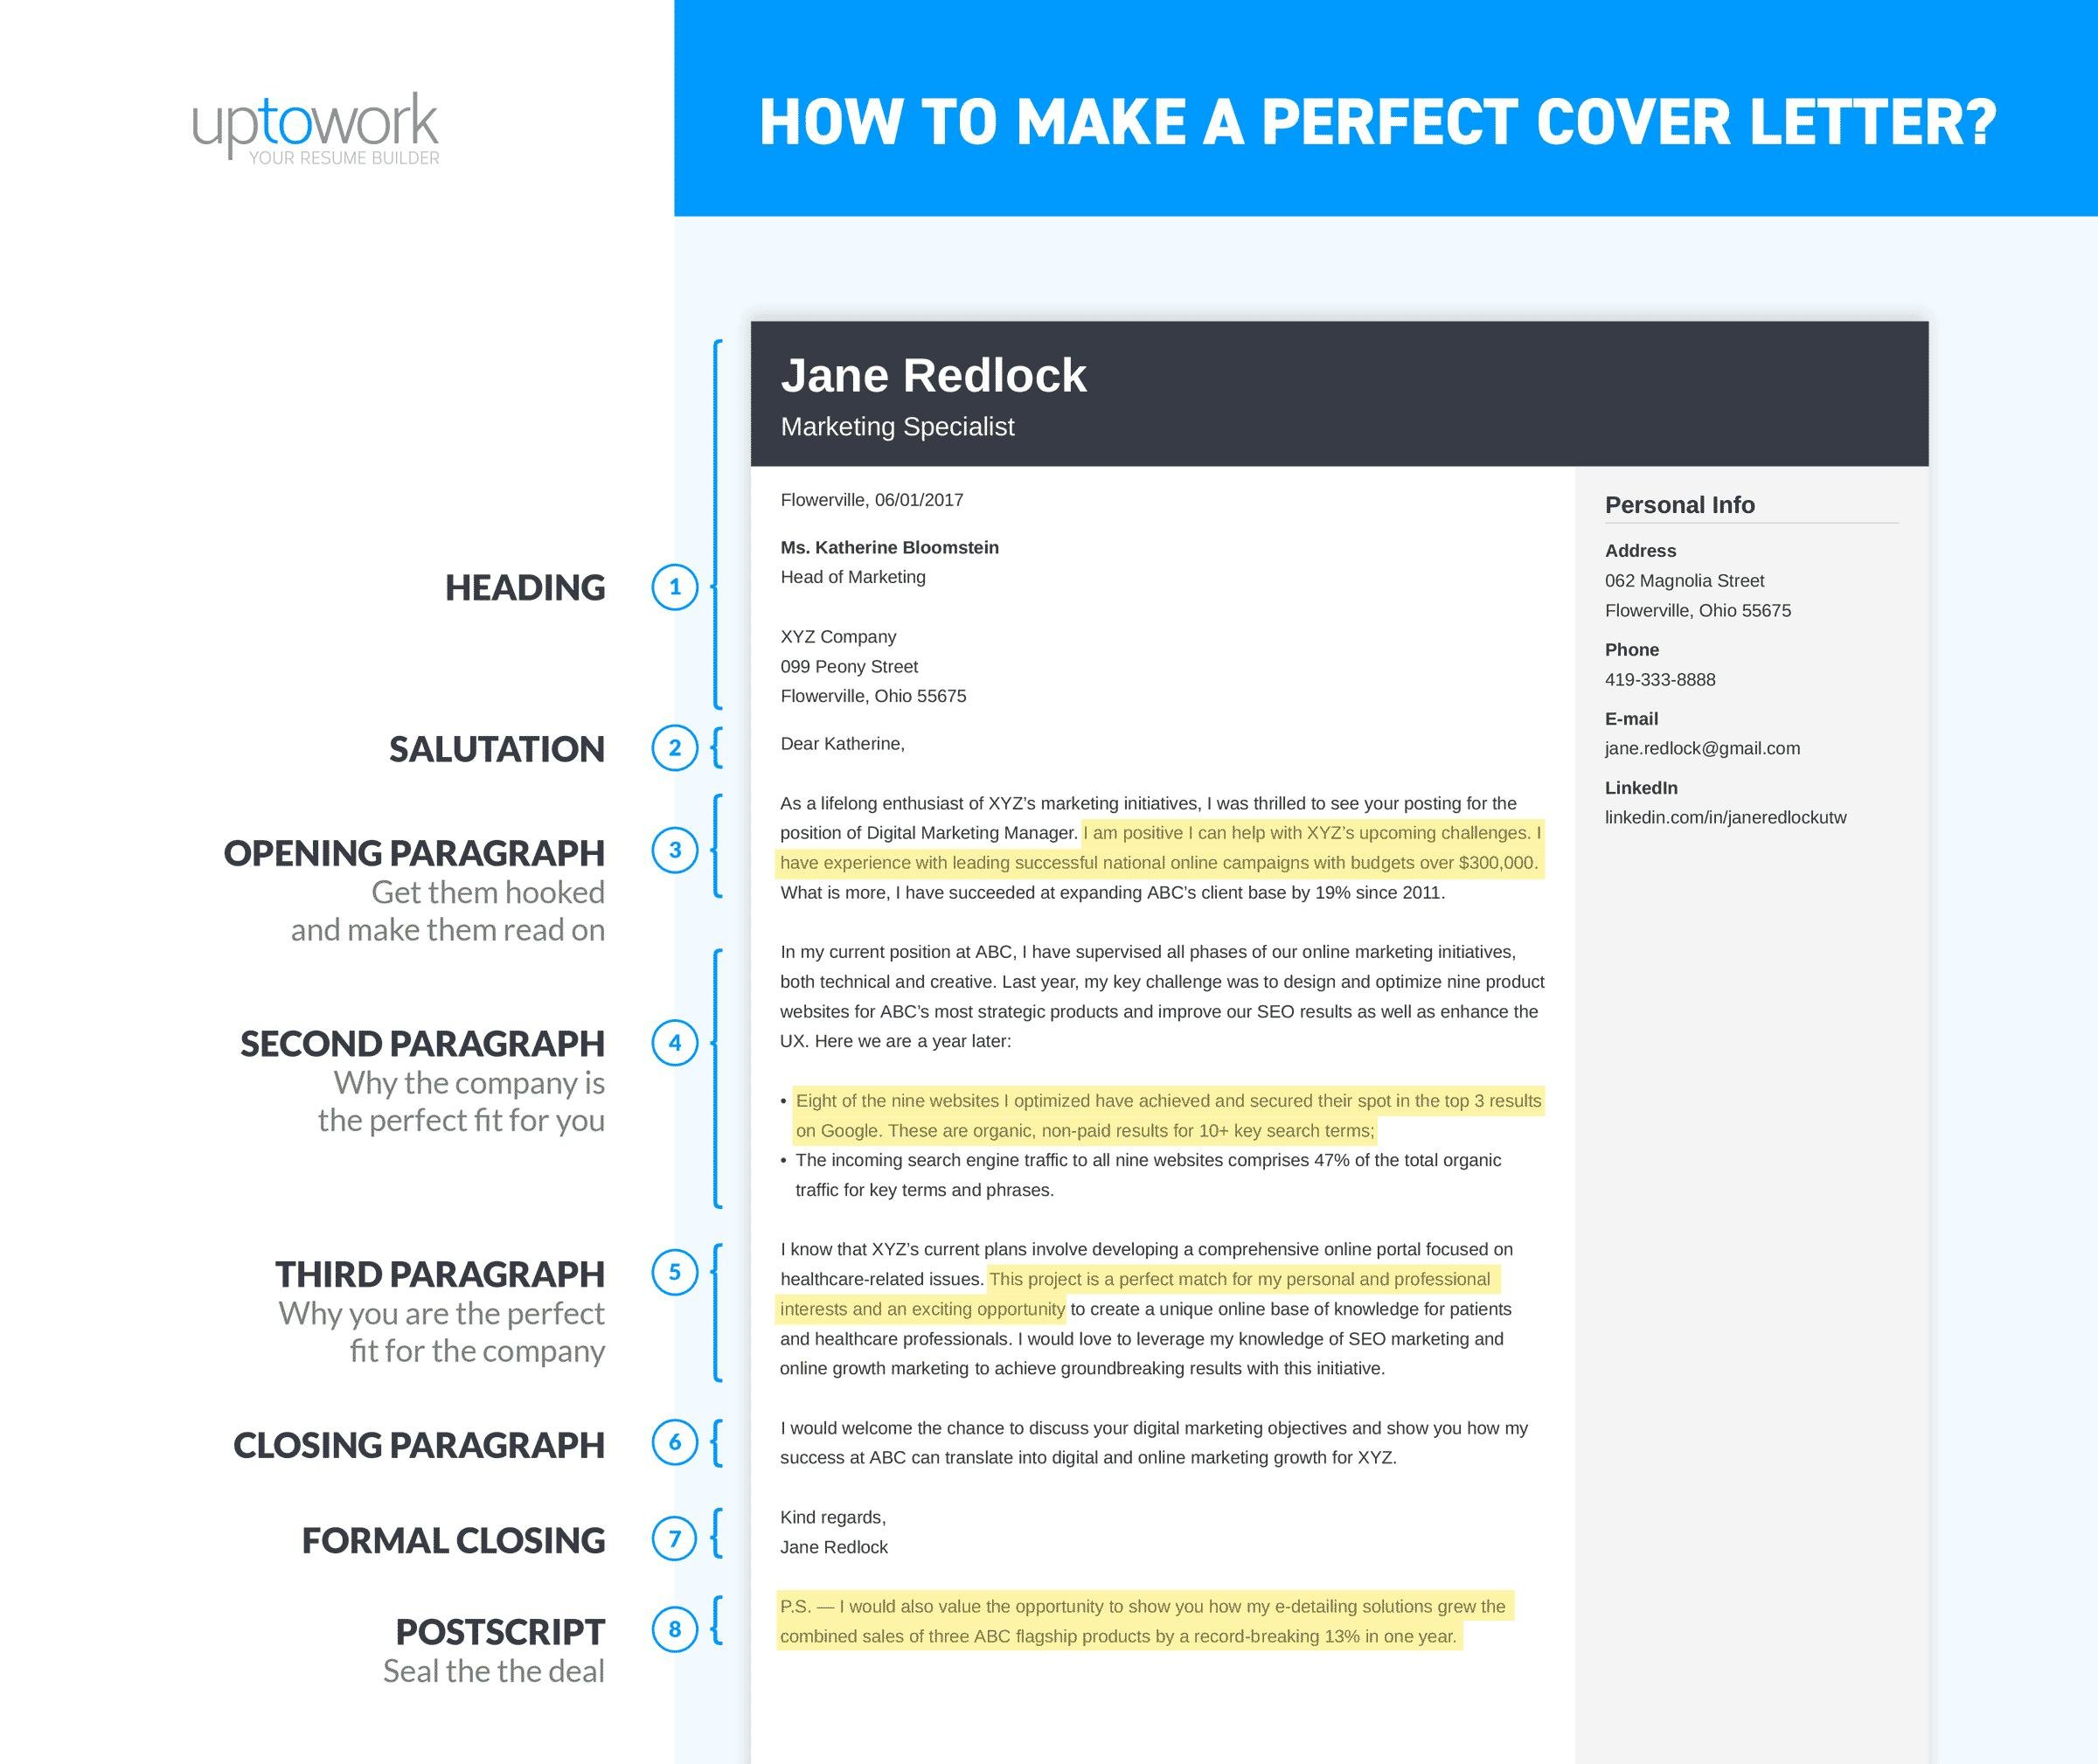 Writing A Cover Letter Design: How To Write A Cover Letter In 8 Simple Steps (+12 Examples